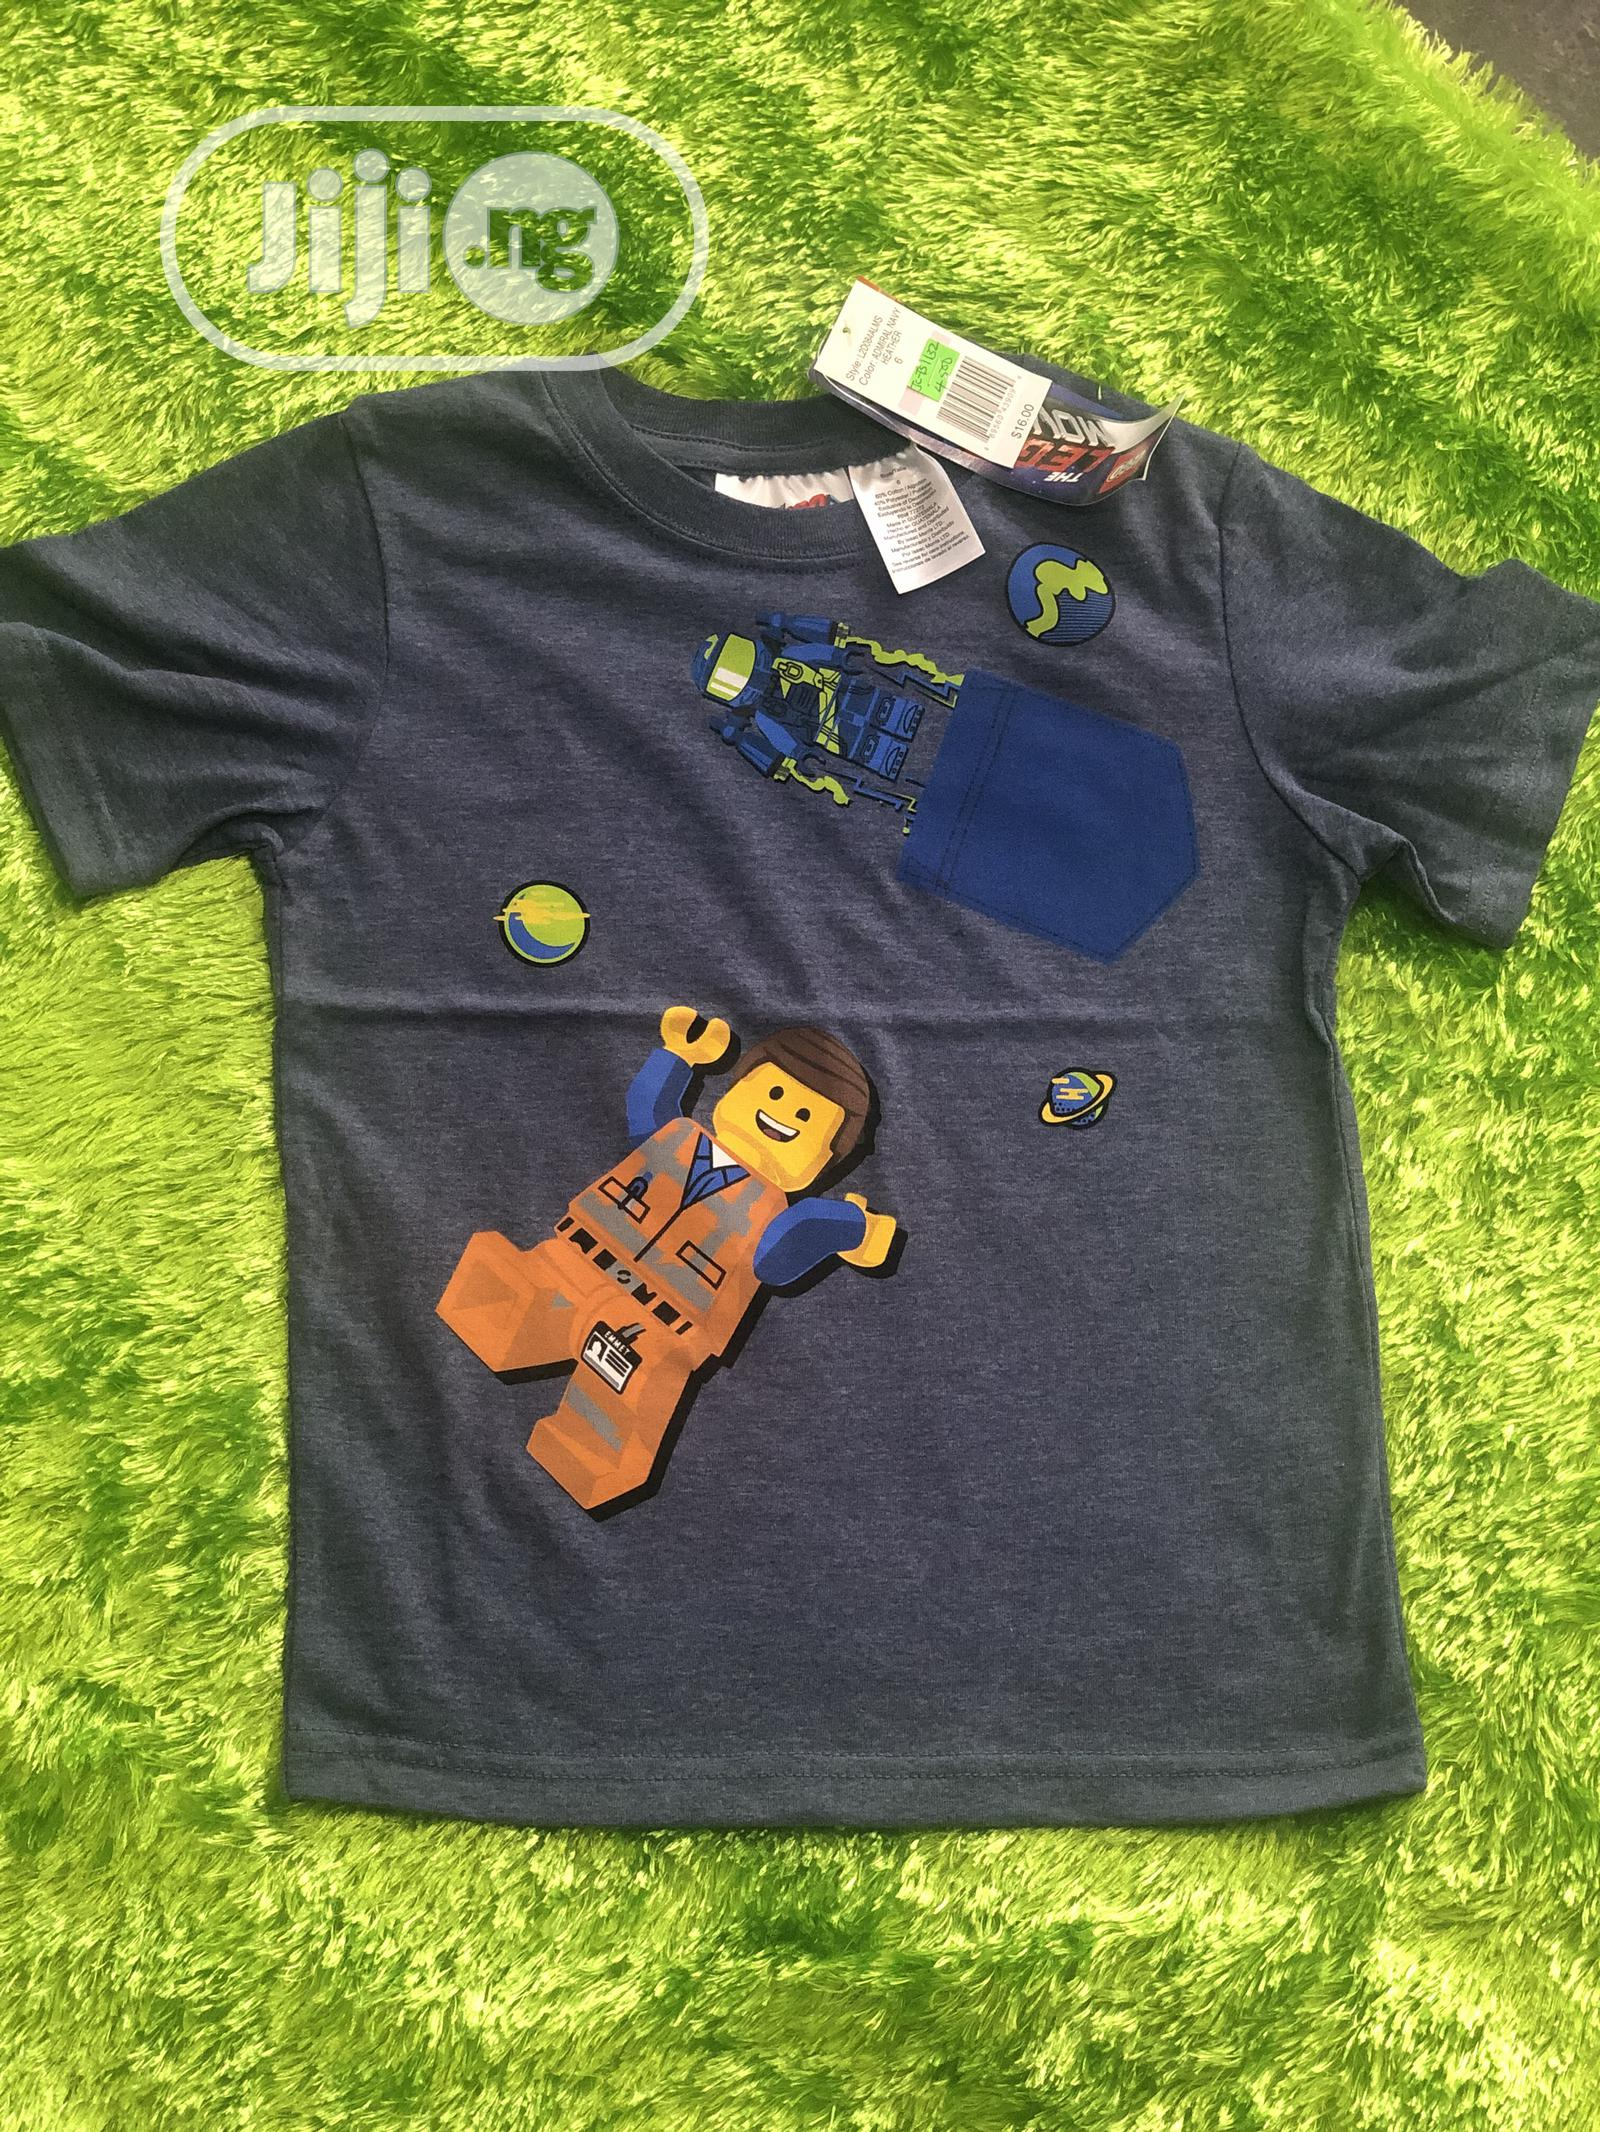 Lego Boys T.Shirt | Children's Clothing for sale in Alimosho, Lagos State, Nigeria